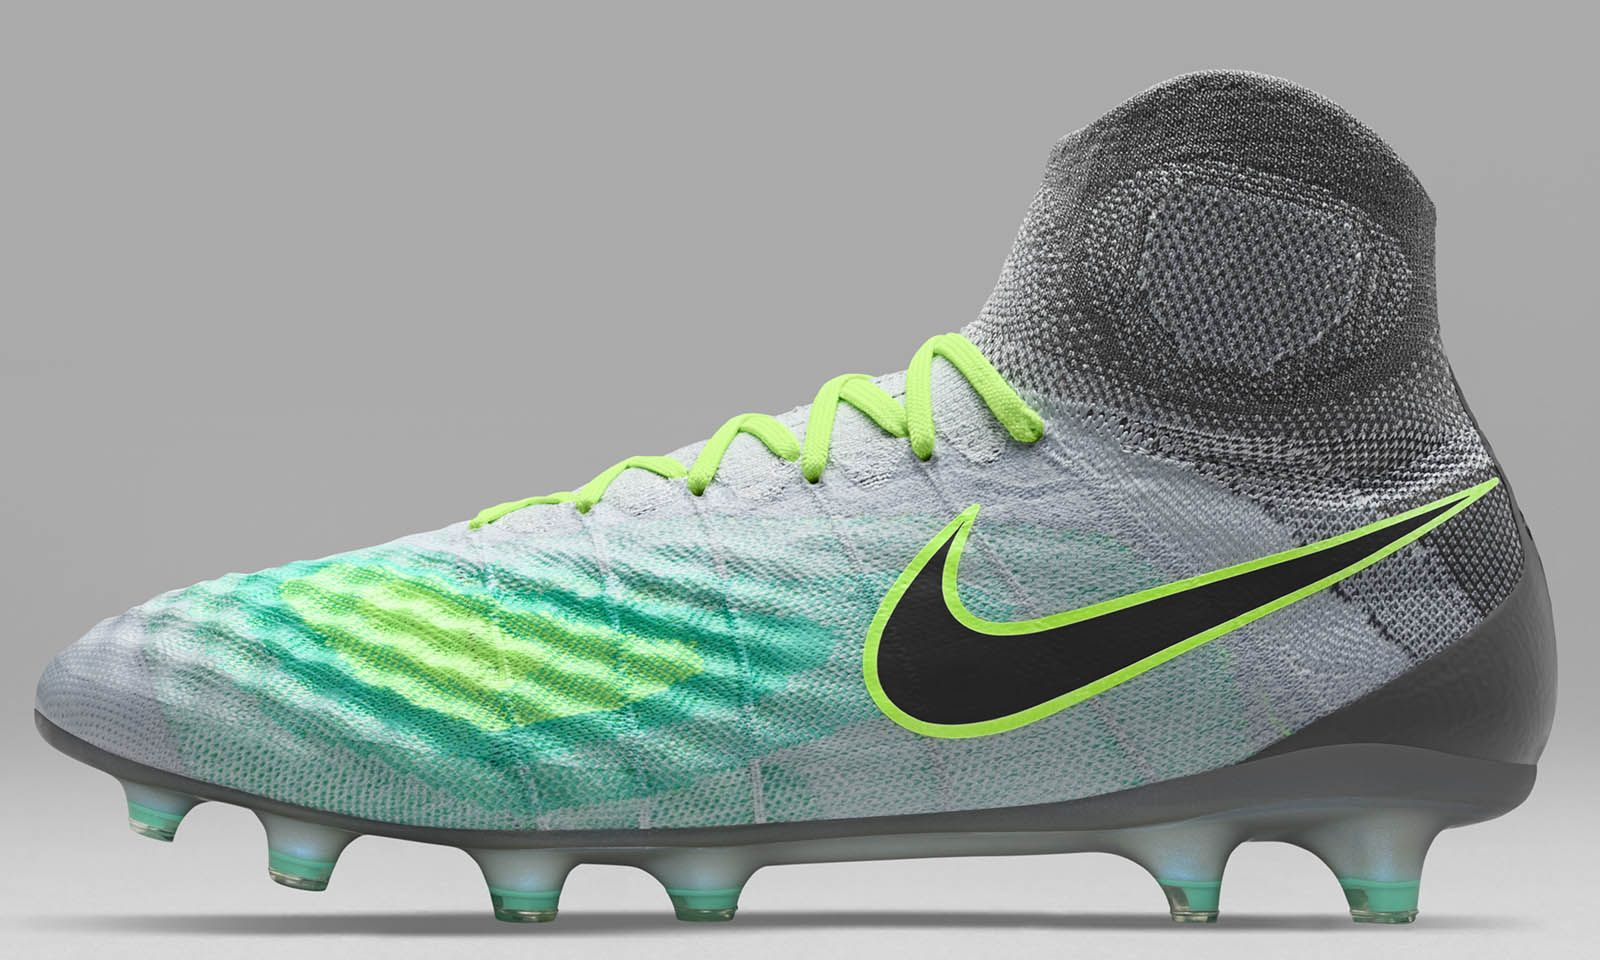 The Pure Platinum Nike Magista Obra II football boots introduce an  understated-yet-bold look for the second-gen Nike Magista cleats 78a9c60559d46